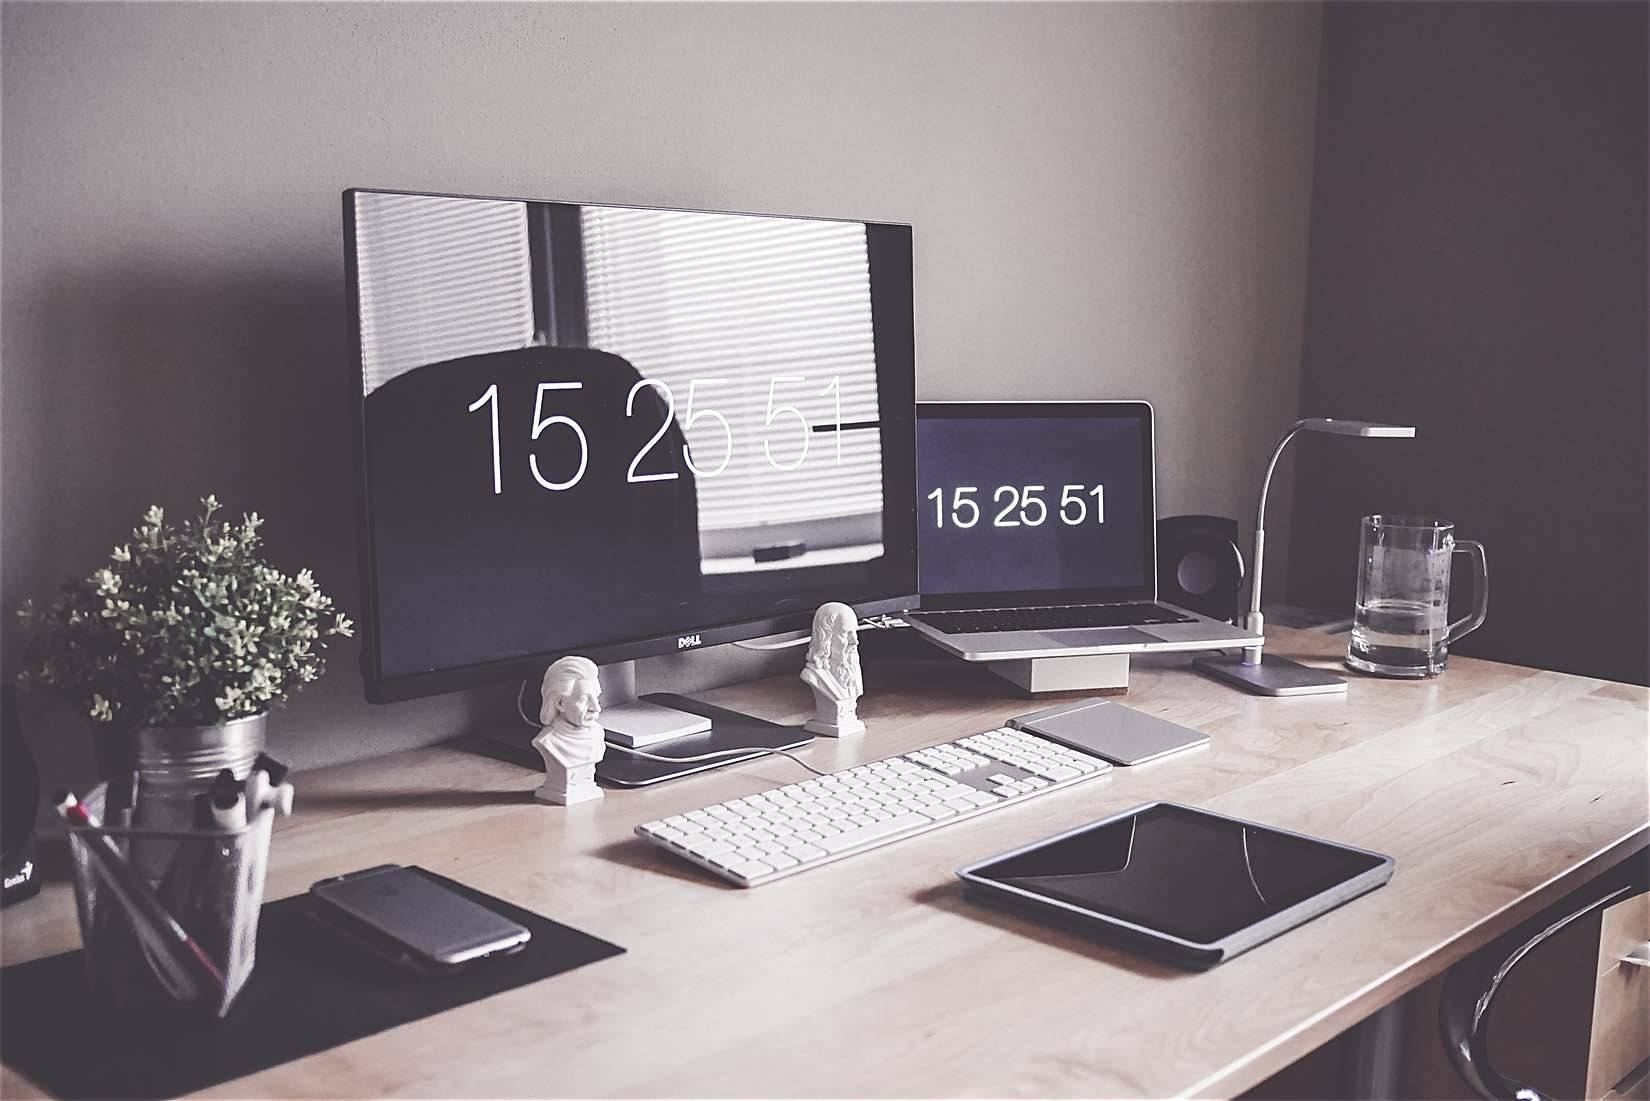 Minimalist Home Office Workspace Desk Setup